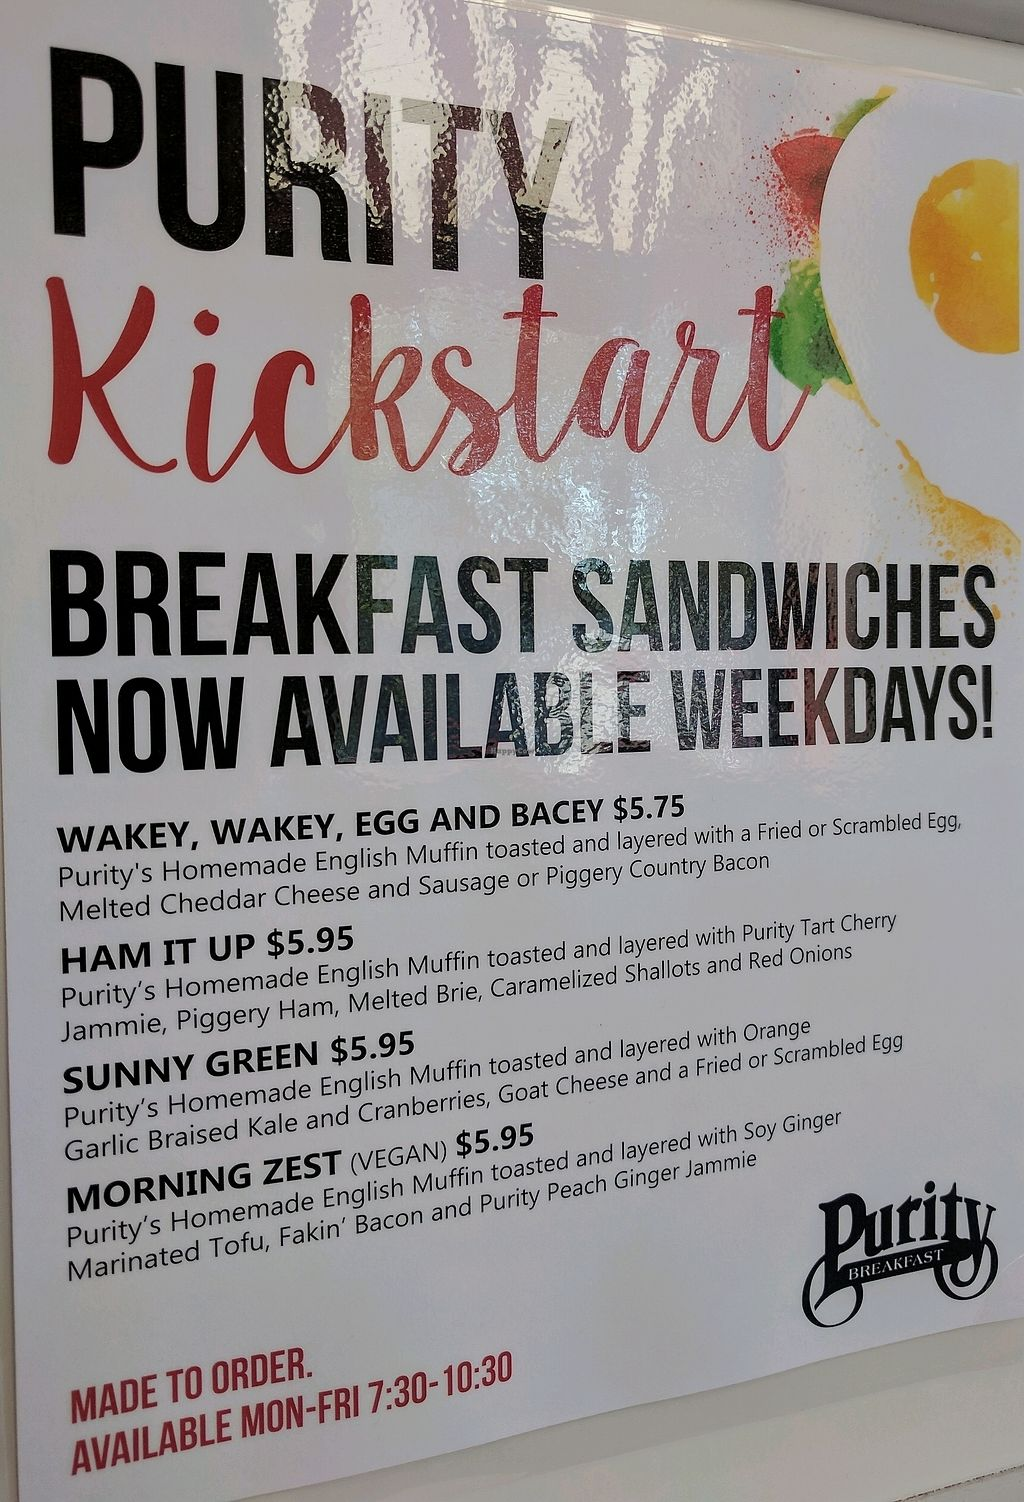 """Photo of Purity Ice Cream  by <a href=""""/members/profile/Chickadee"""">Chickadee</a> <br/>breakfast menu with vegan sandwich option <br/> September 24, 2017  - <a href='/contact/abuse/image/29364/307831'>Report</a>"""